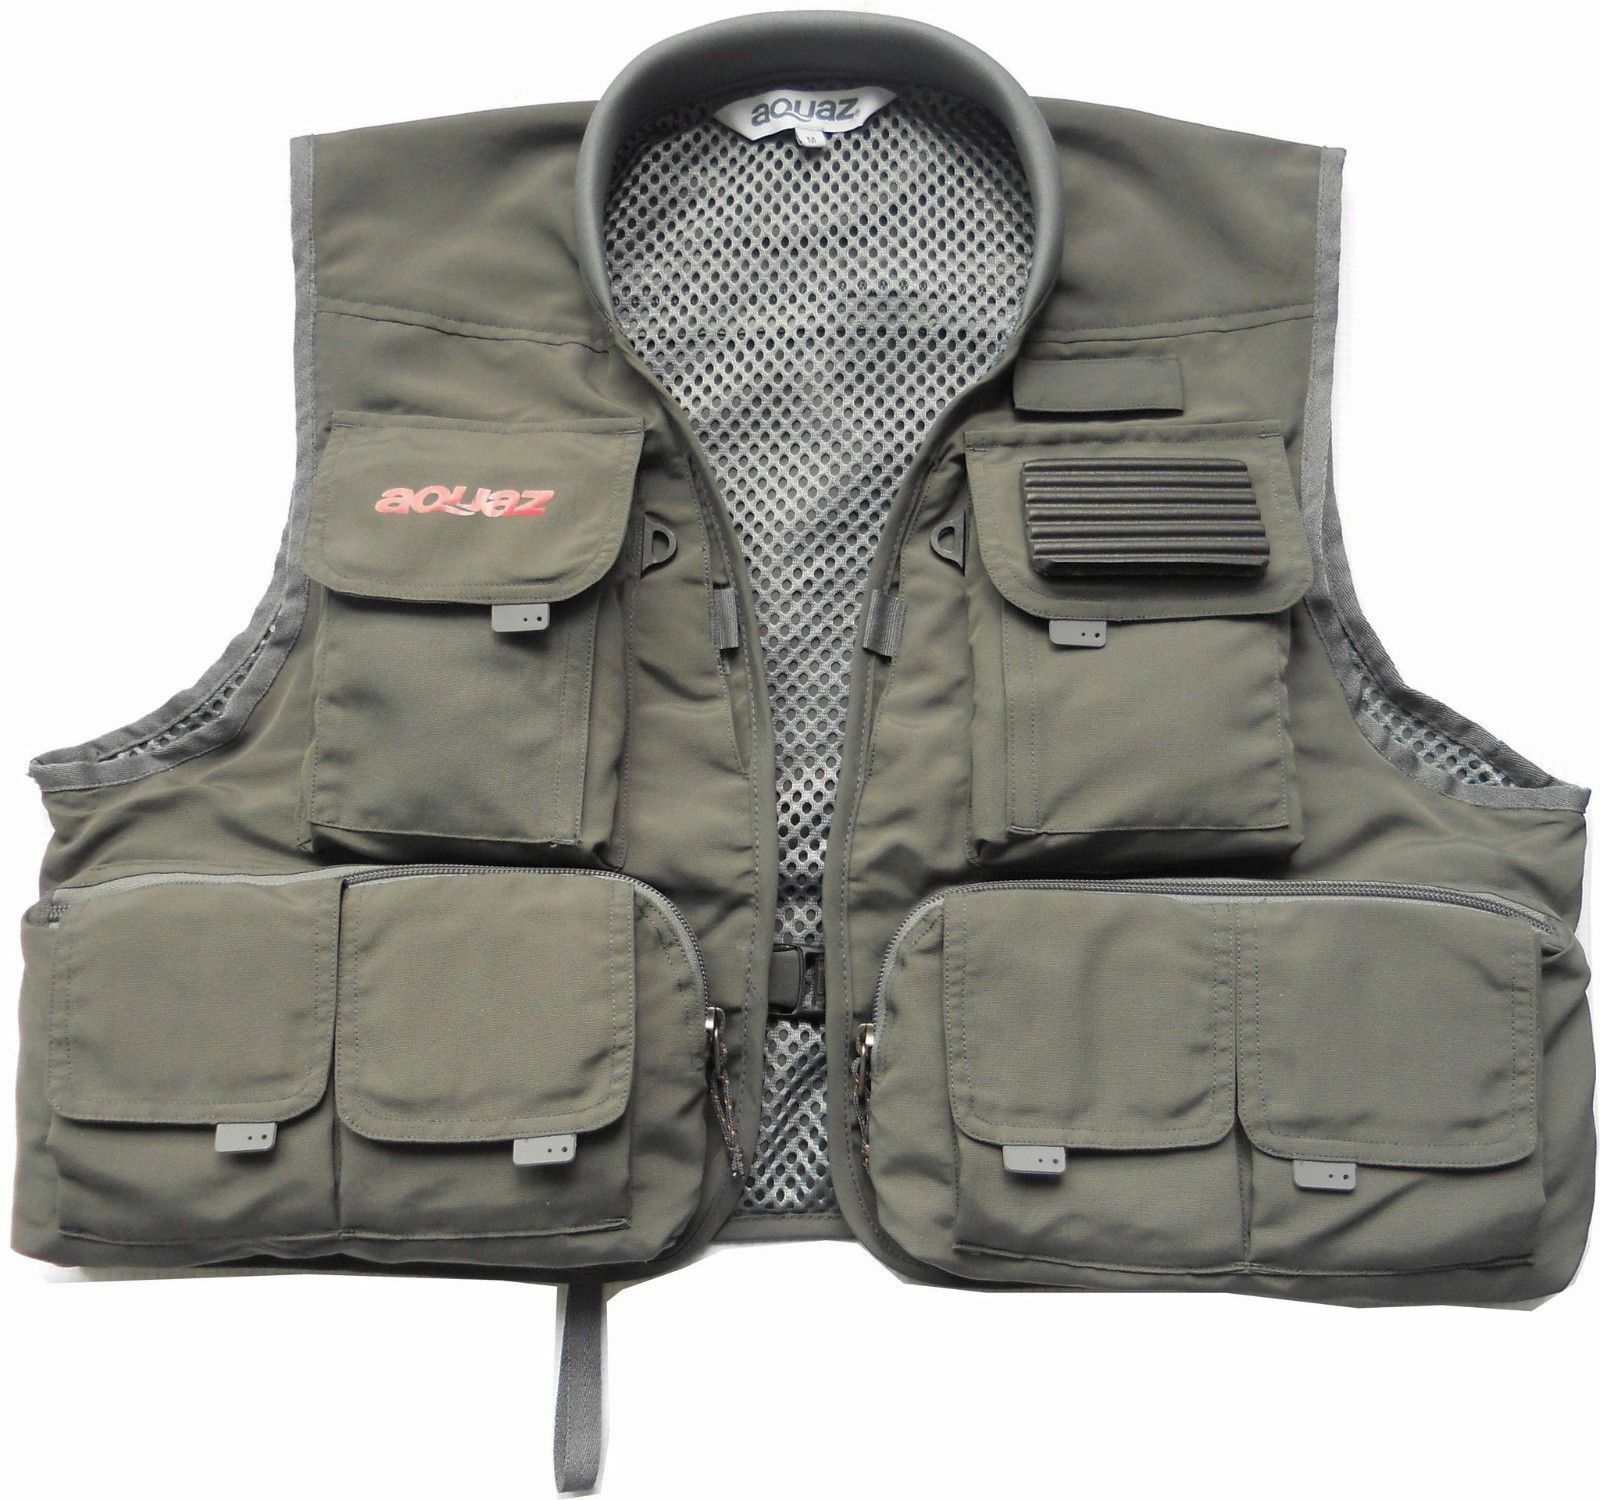 Aquaz Kenai Fly Fishing   Wading Chest Vest - Size Large Charcoal Grey color NEW